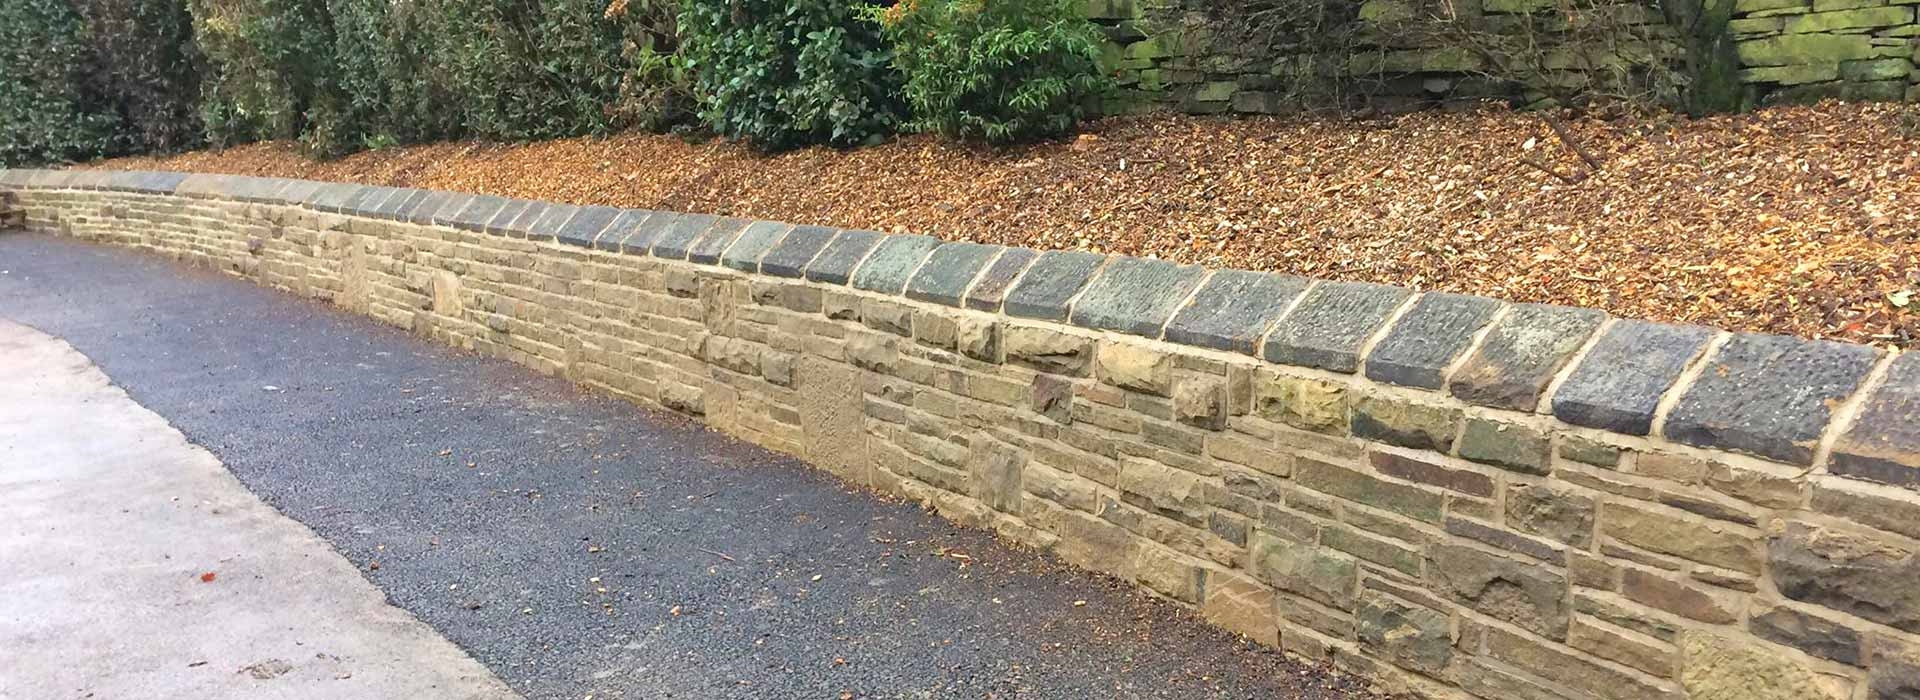 Large Brick Wall Built in Halifax